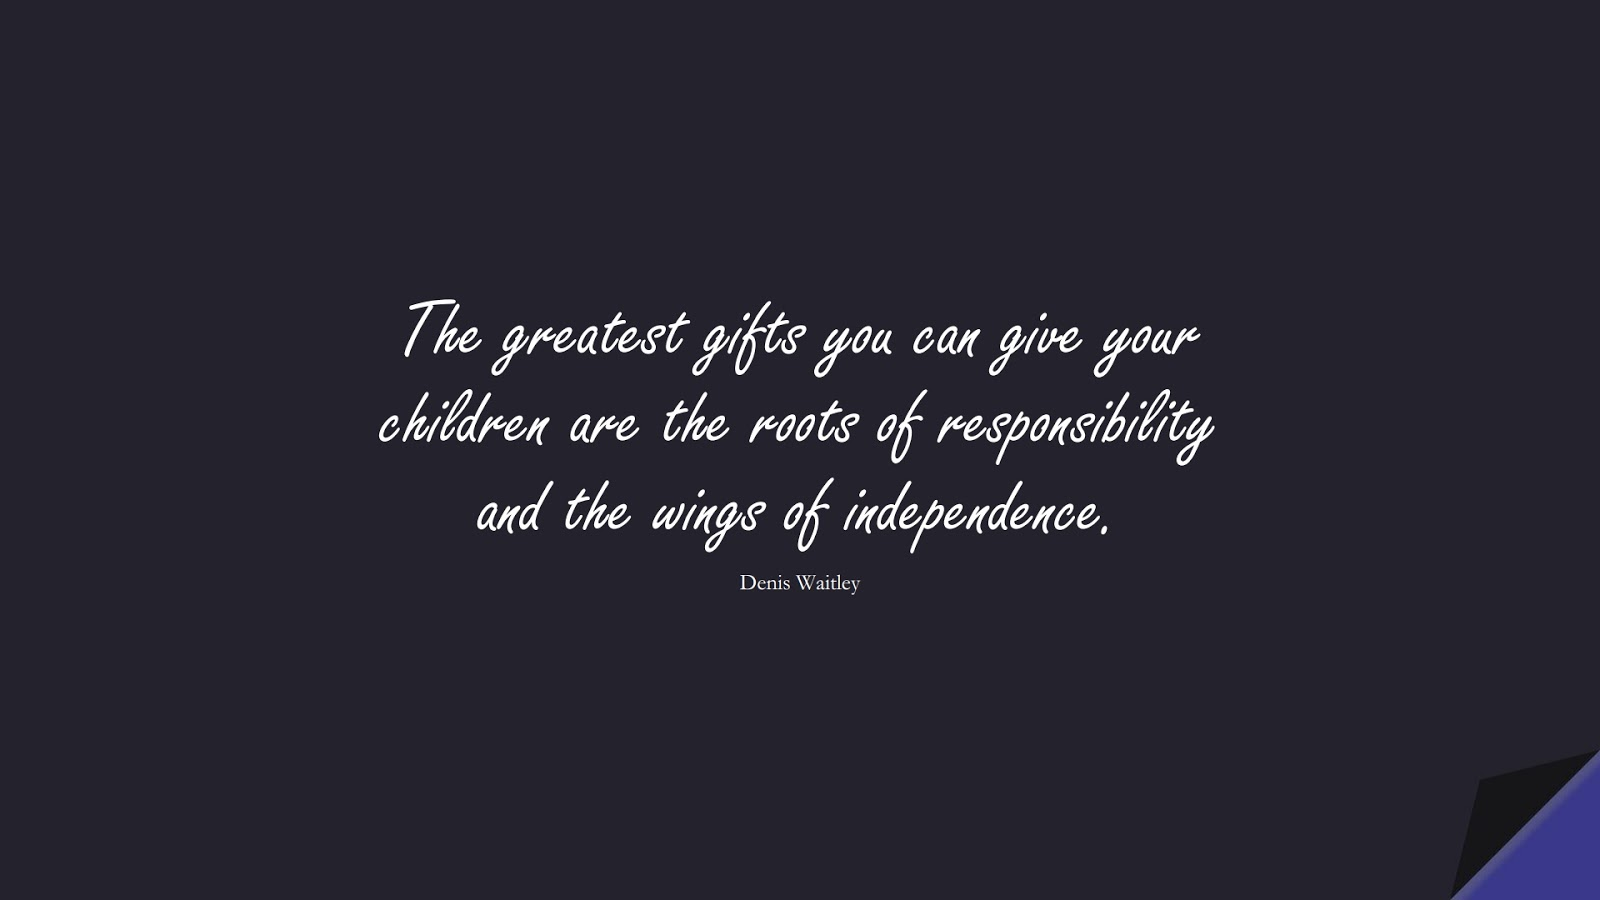 The greatest gifts you can give your children are the roots of responsibility and the wings of independence. (Denis Waitley);  #FamilyQuotes